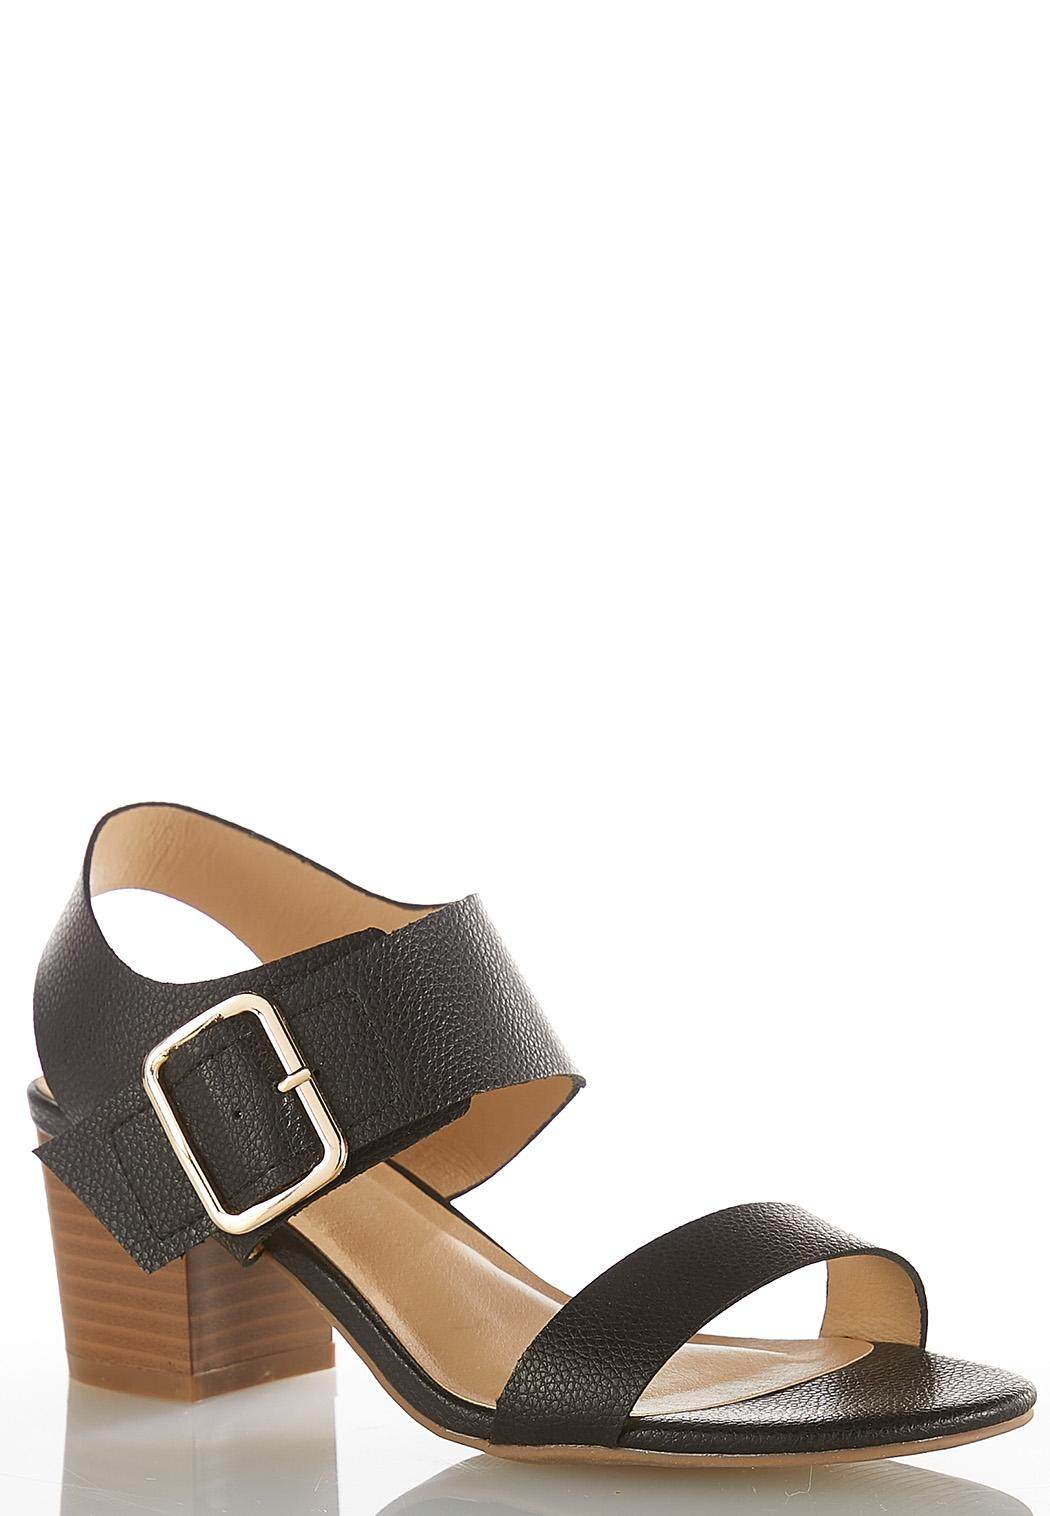 963e0ed1f63 Buckle Strap Heeled Sandals Sandals Cato Fashions